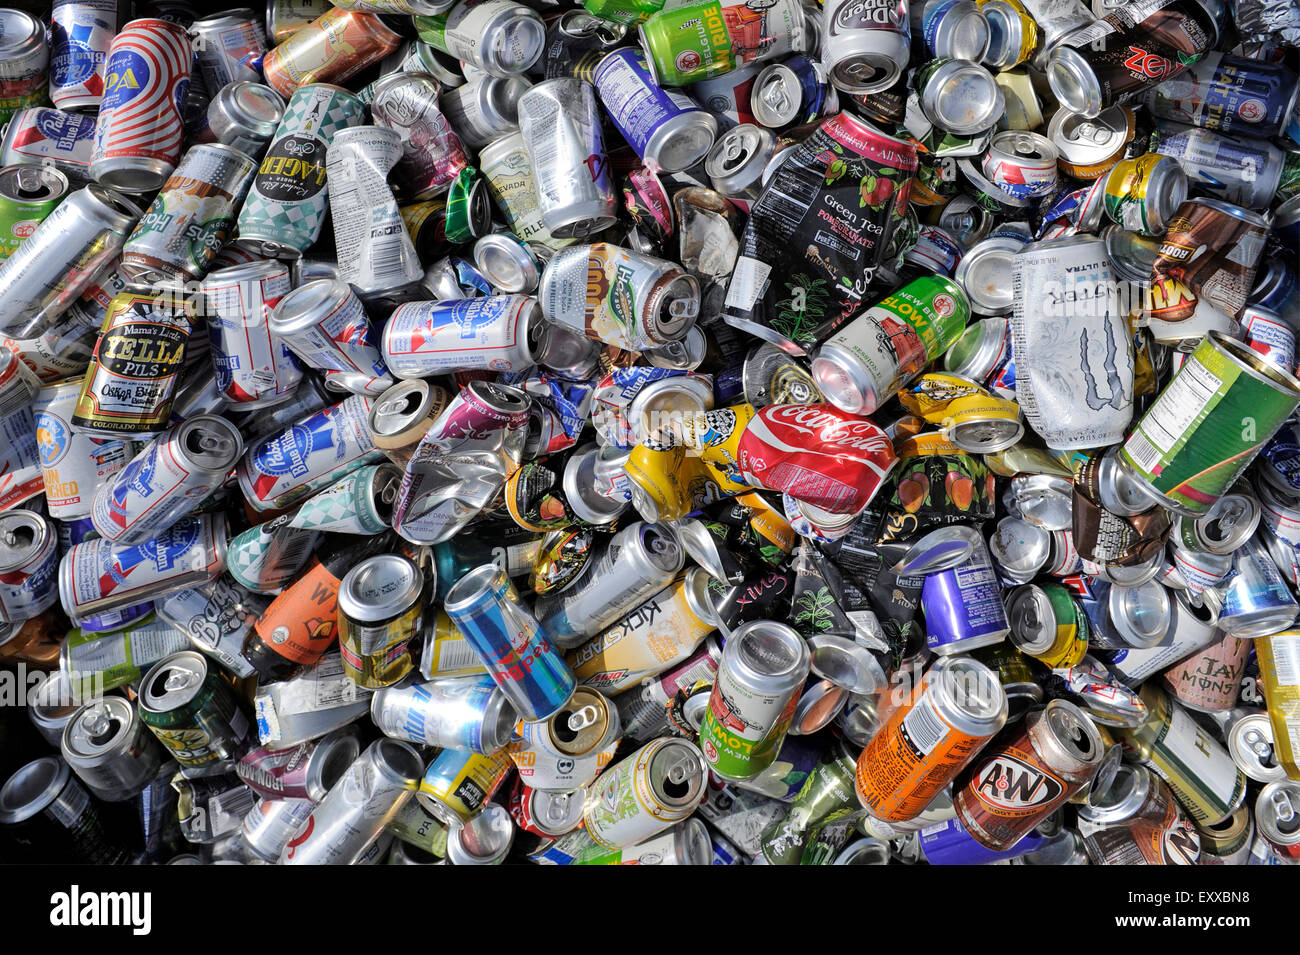 Moab, UT, USA - June 4, 2015: Empty beverage cans in a roadside container, collected for recycling. - Stock Image